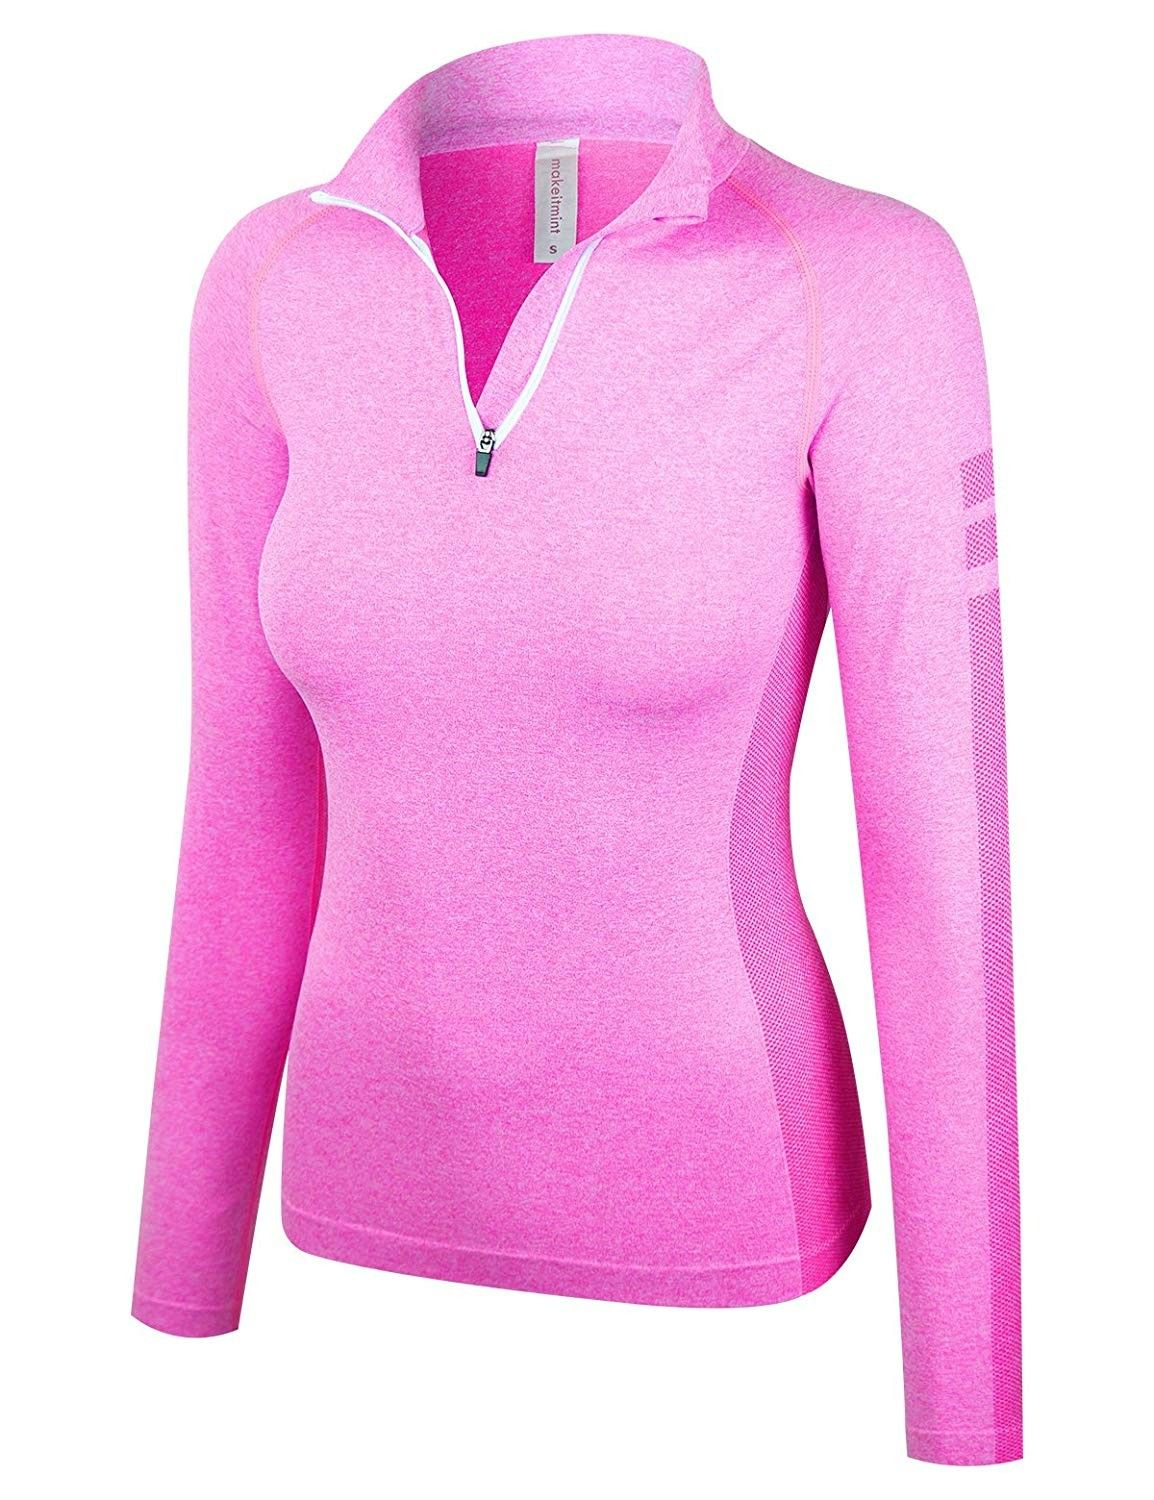 Women's Comfy Zip Up Pull Over Active Stretchy Work Out Track Top - [Yil0014]pink - CM180UN9CKQ - Sp...